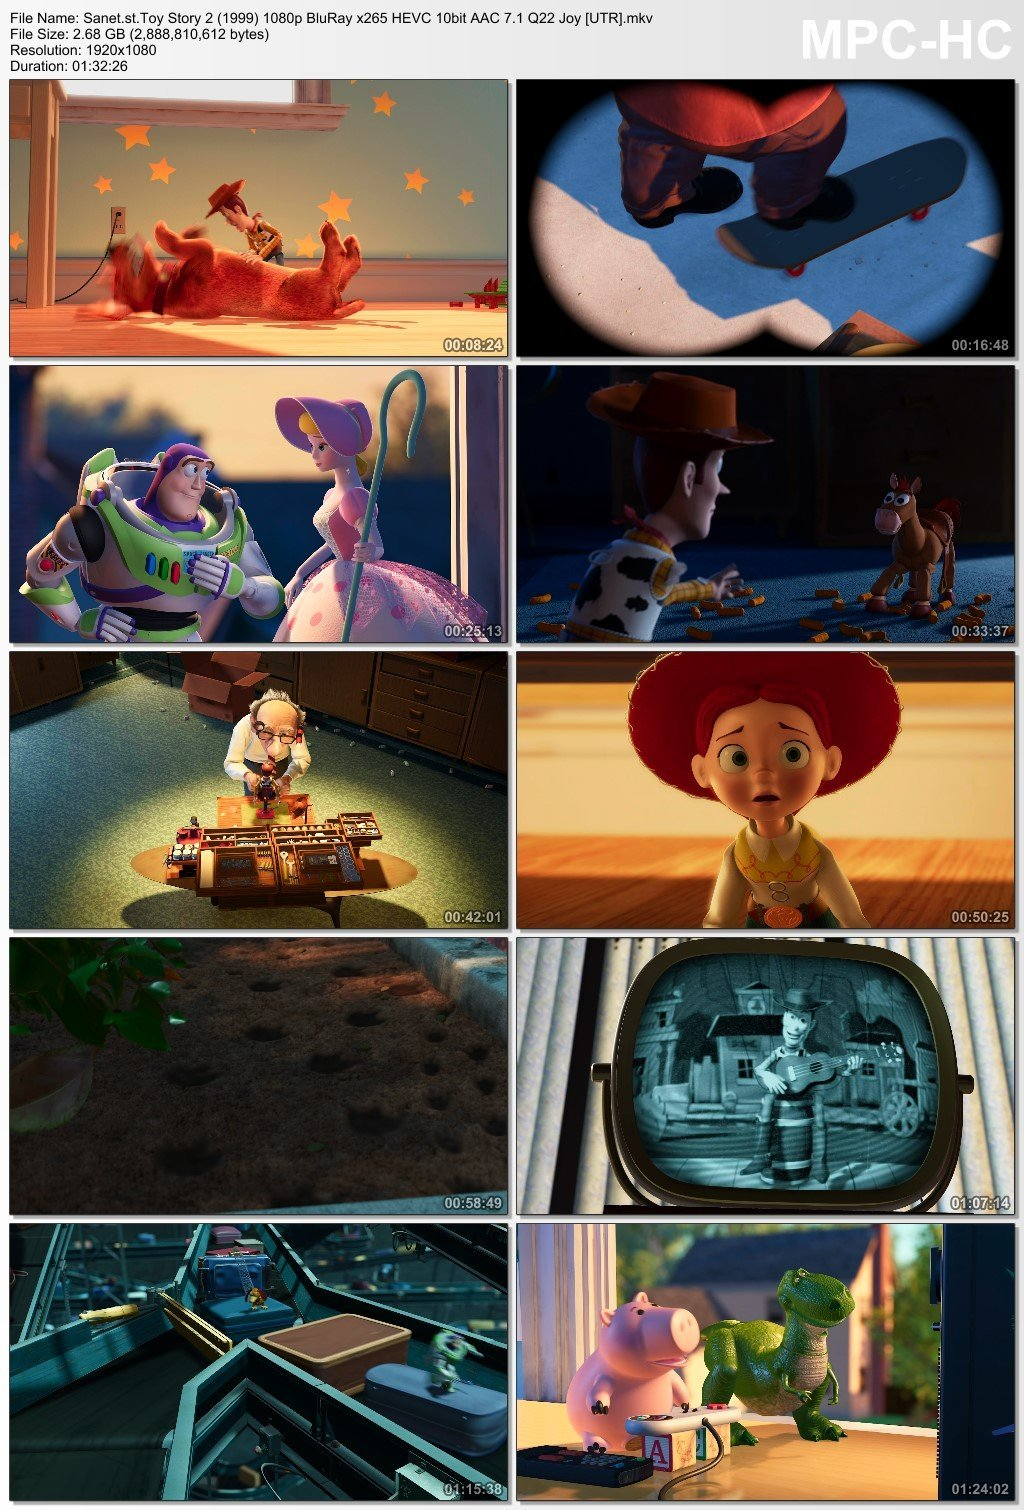 Download Toy Story 2 1999 1080p BluRay x265 HEVC 10bit AAC 7 1 Q22